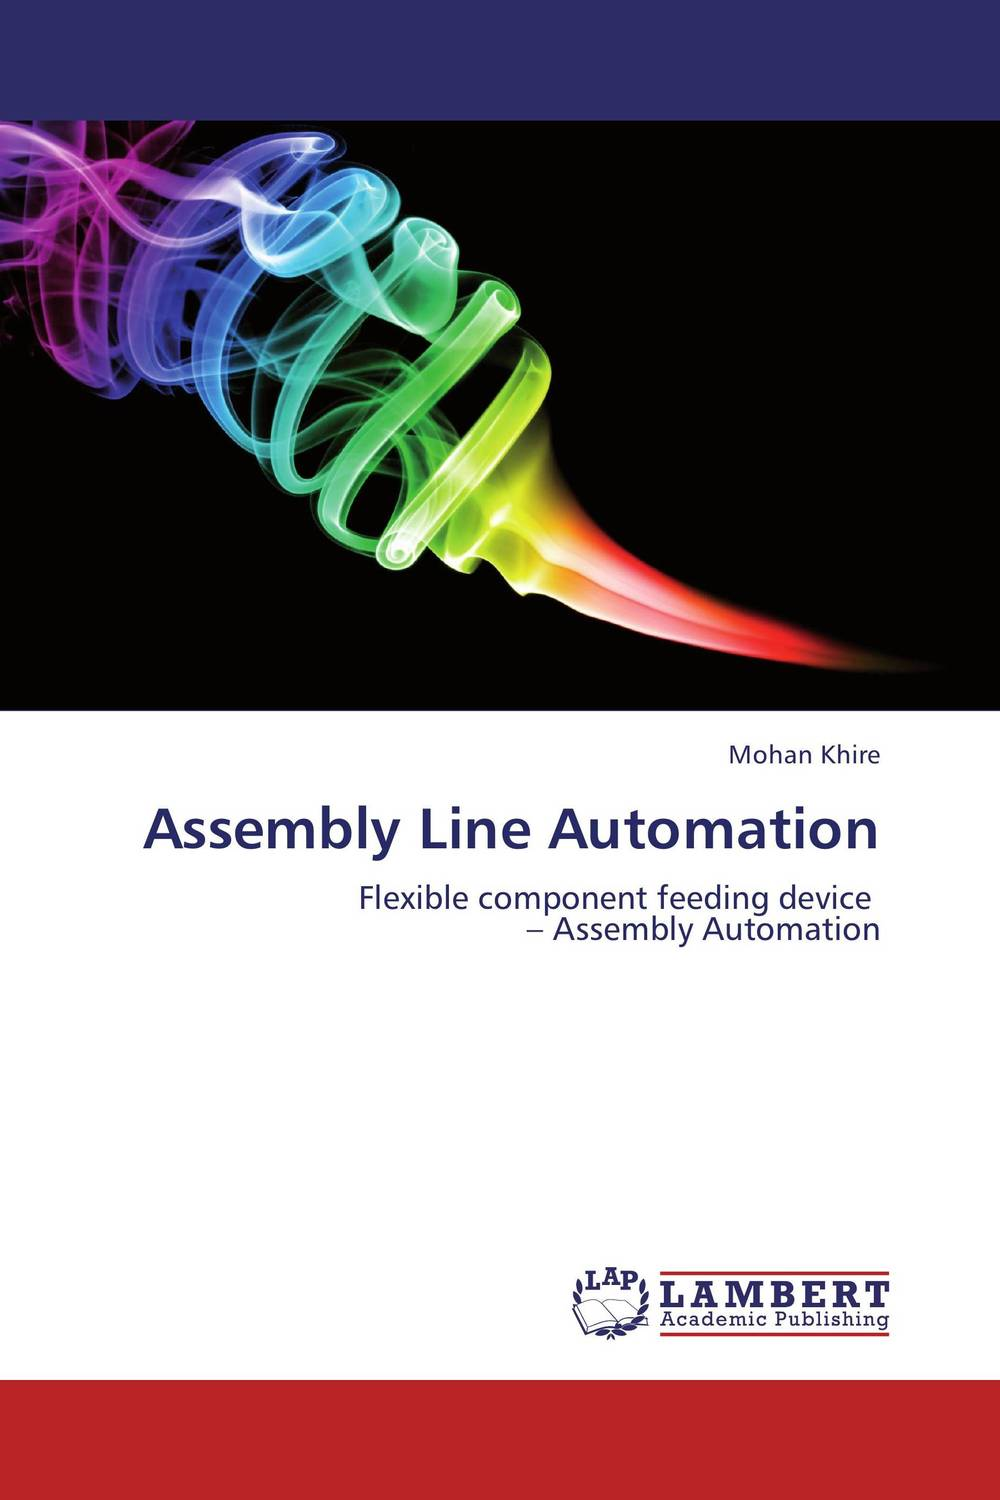 Assembly Line Automation low cost automation and effective material handling systems